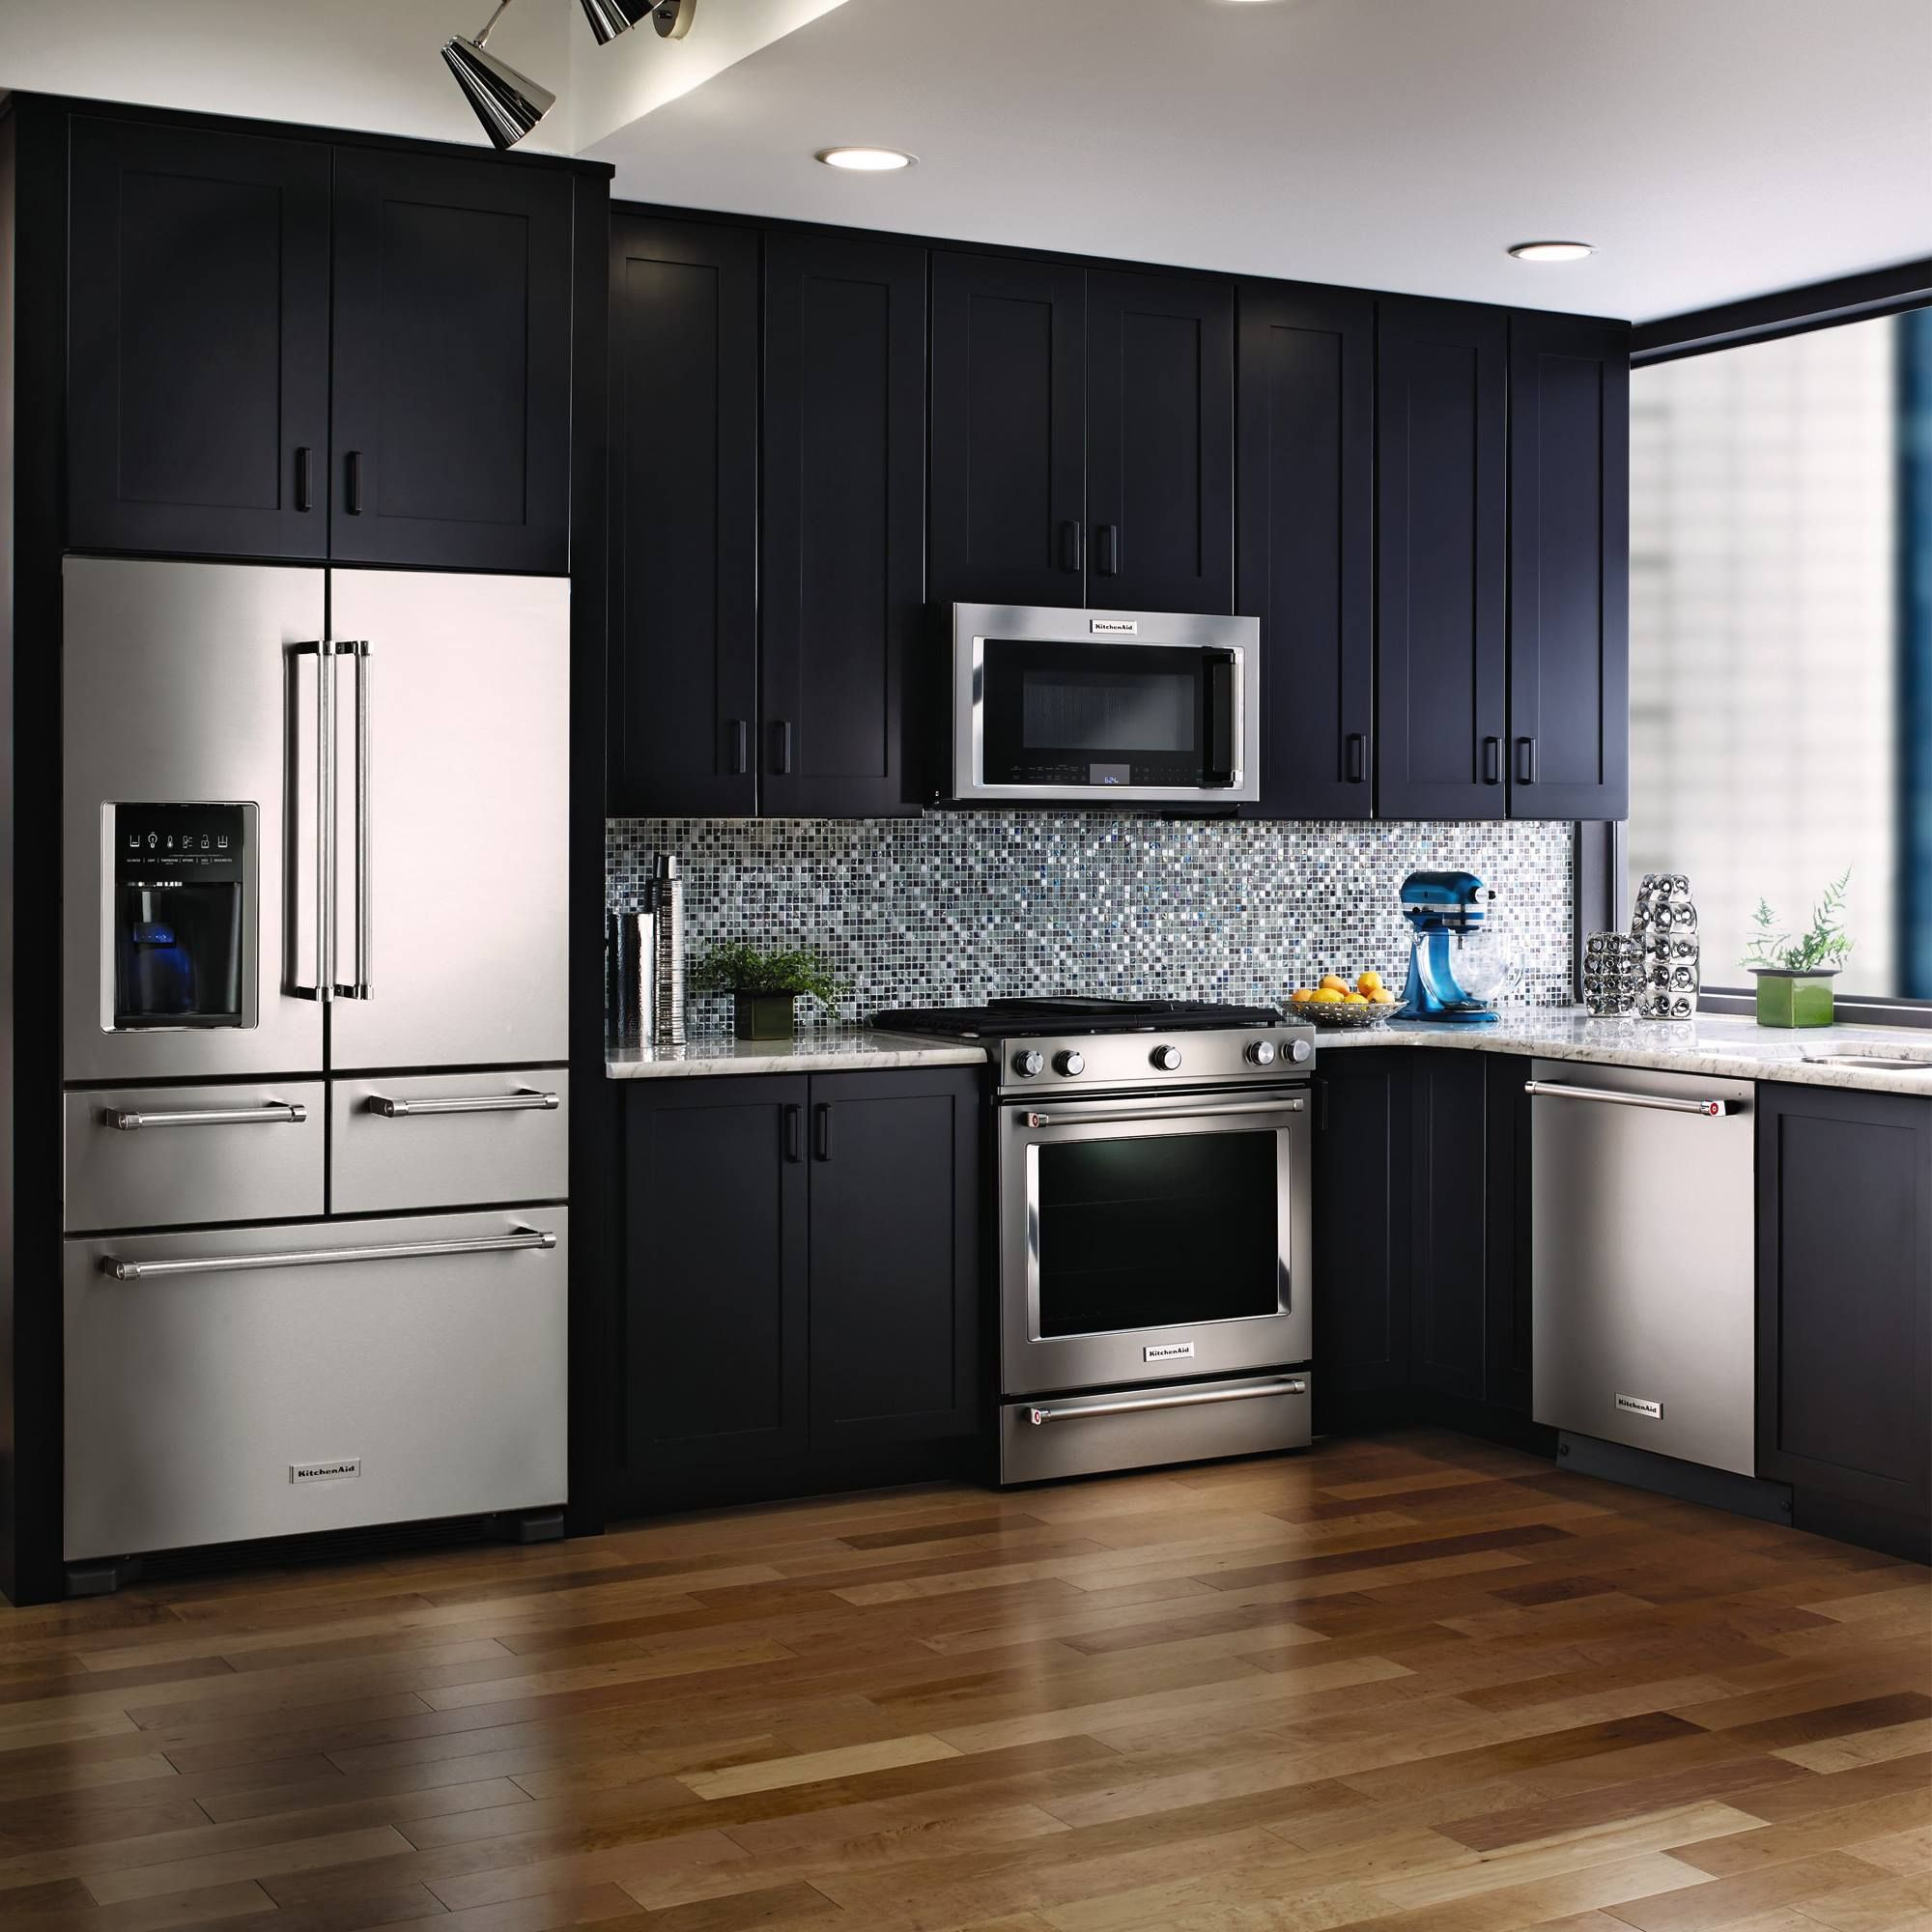 Home Depot Canada Super Savings Event Save Big on Many Appliances